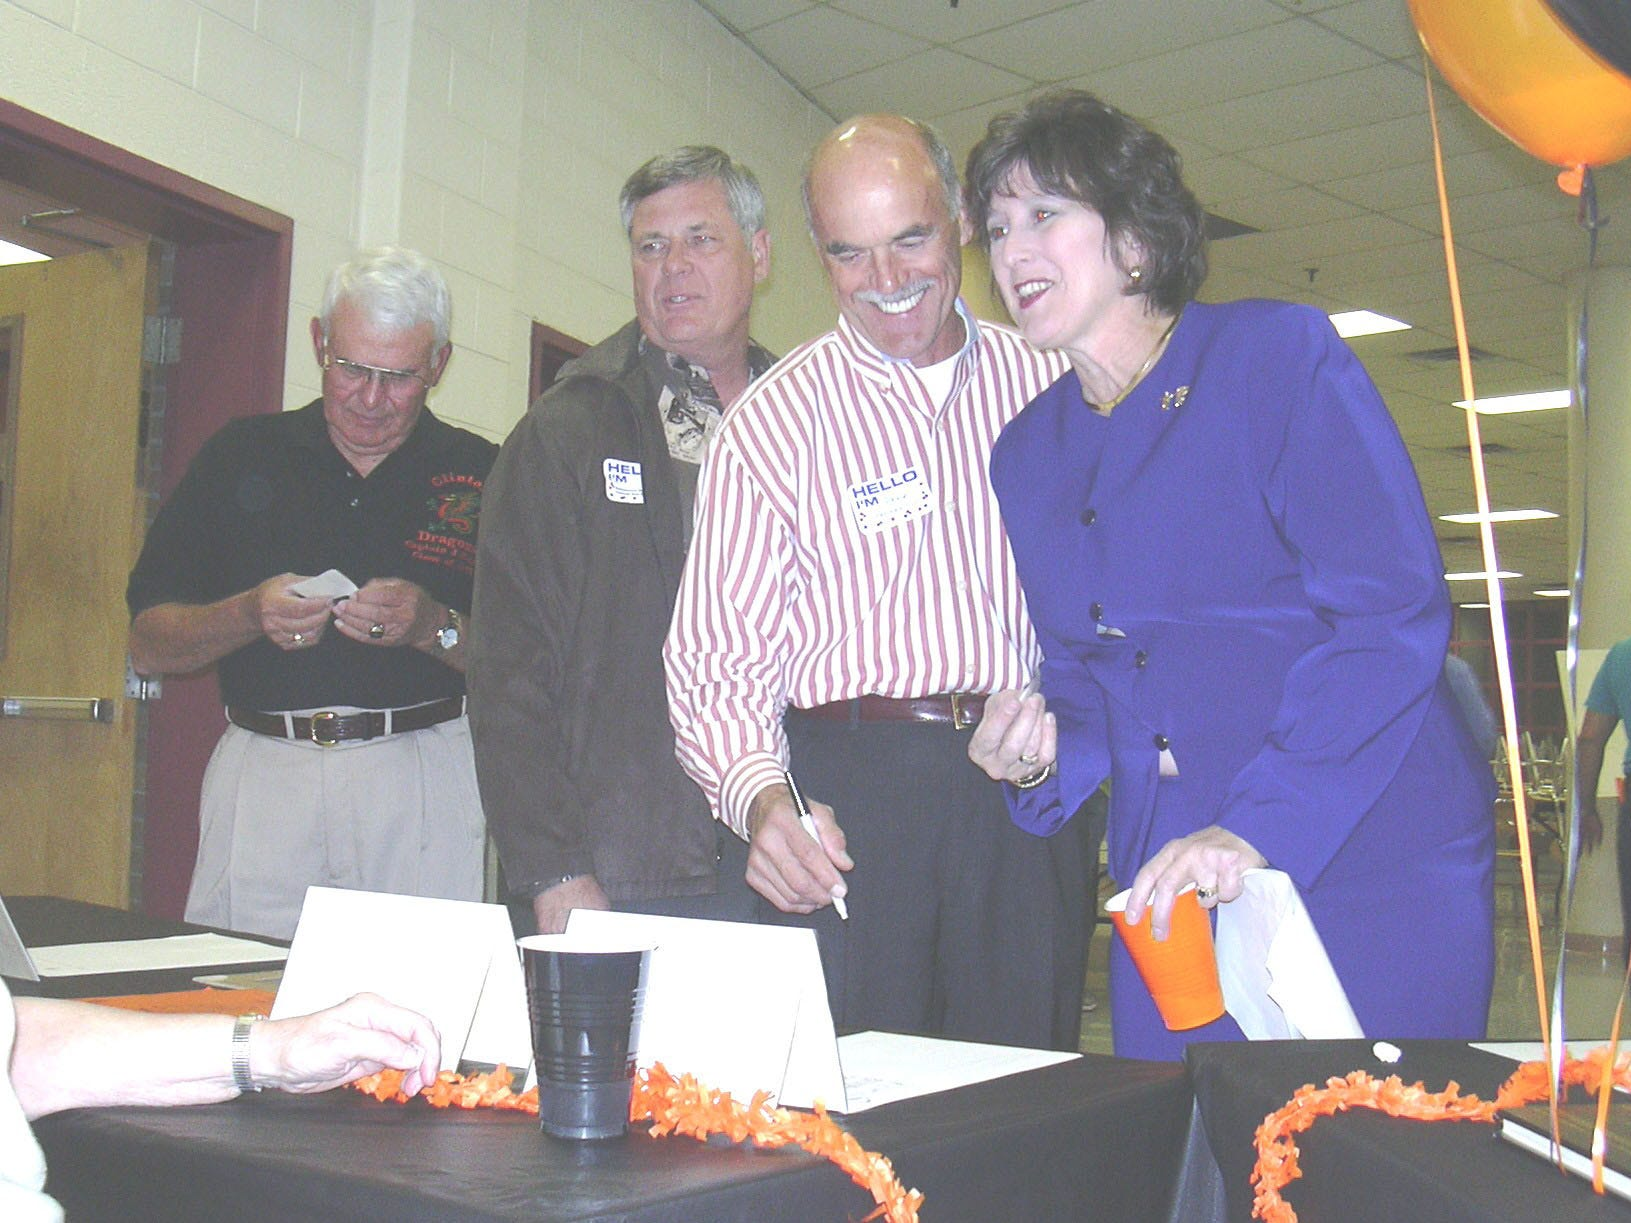 Four well-known alumni of Clinton High School sign the guest register in the years designated for their respective classes during the celebration of the school's anniversary. From left: Former County Commissioner Jack Rains, State Rep. Jim Hackworth, D-Clinton, Clinton auctioneer William ``Bear'' Stephenson and Lana Seivers, Tennessee's commissioner of education. 2003